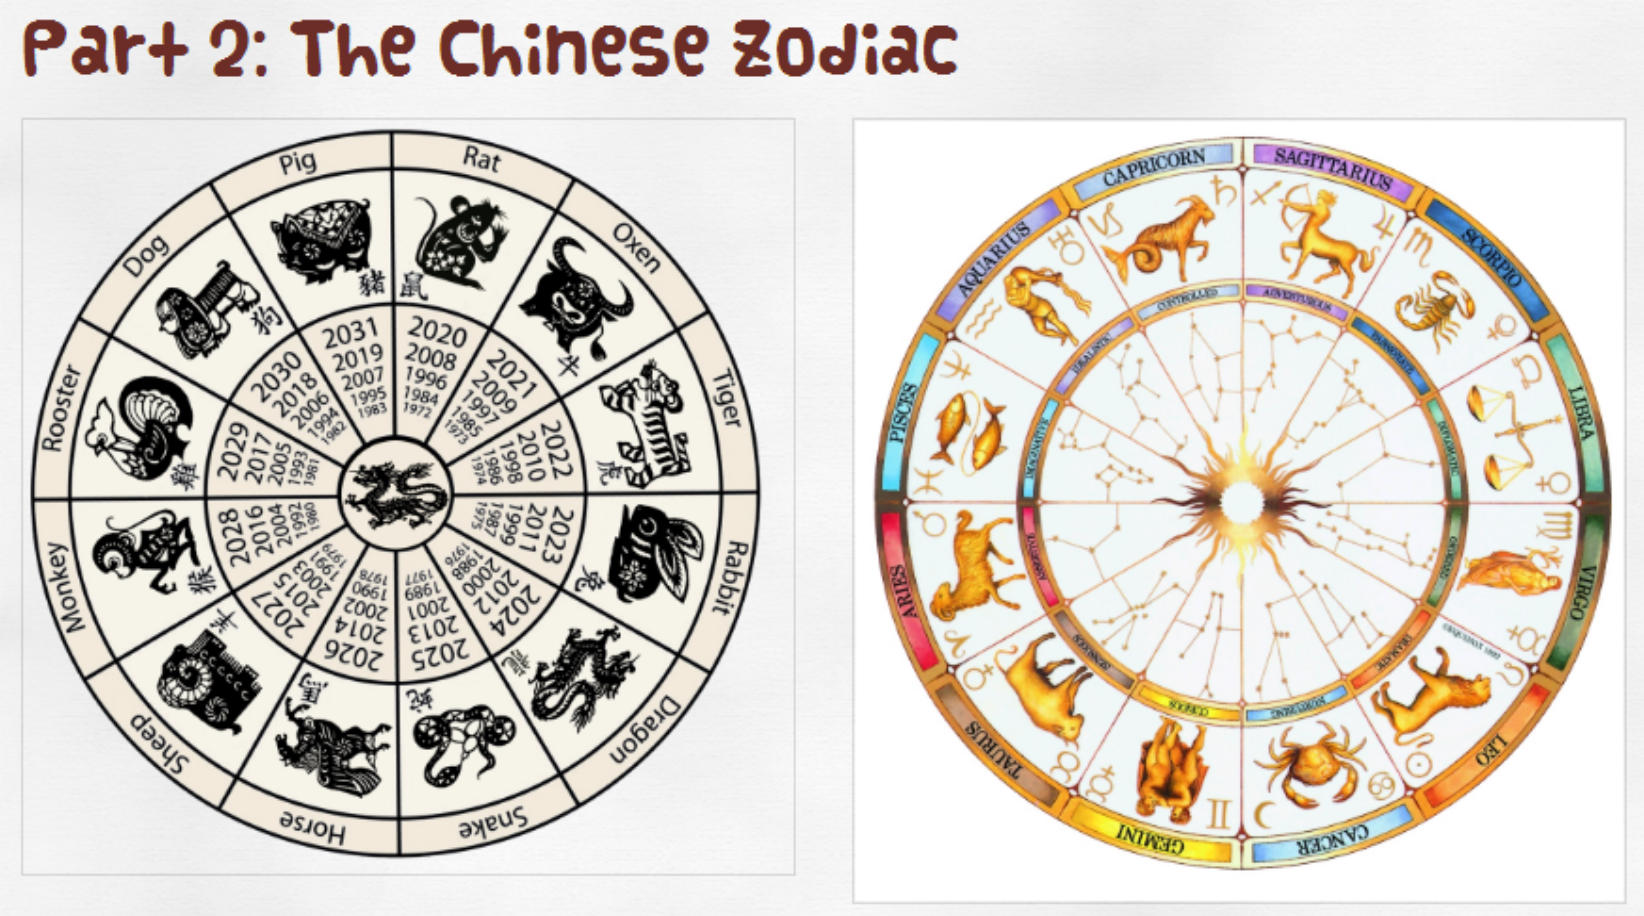 f58b409ea The Chinese Zodiac (known as Sheng Xiao) is similar to the Western Zodiac  in that it follows a cycle of 12 elements that reflect personal  characteristics.